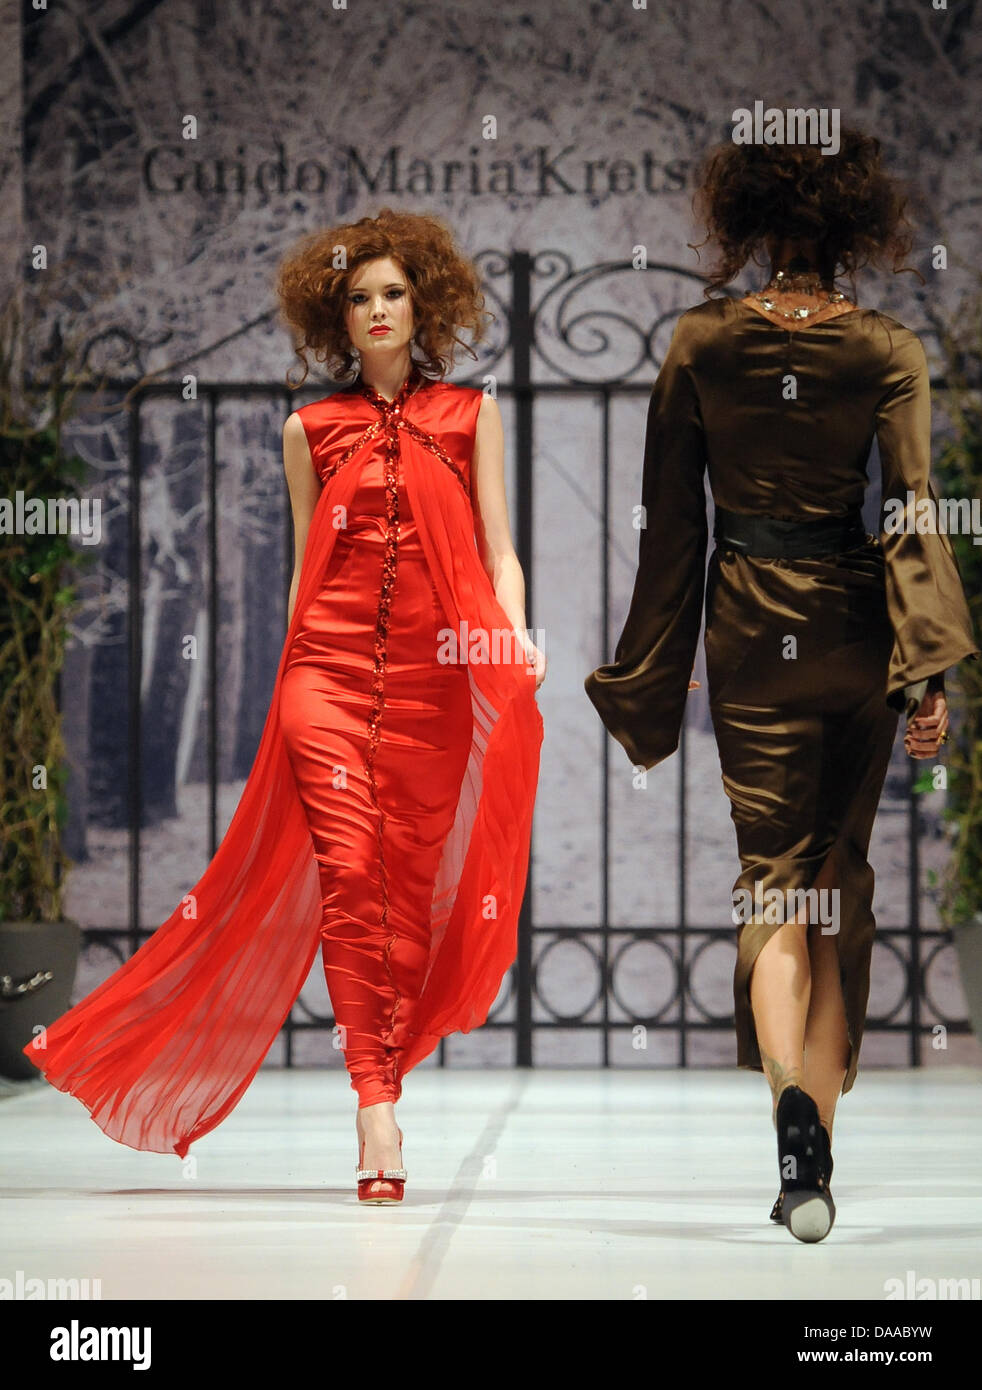 Models present creations at the Guido Maria Kretschmer show during the  Fashion Week in Berlin, 9d7c1f8c65